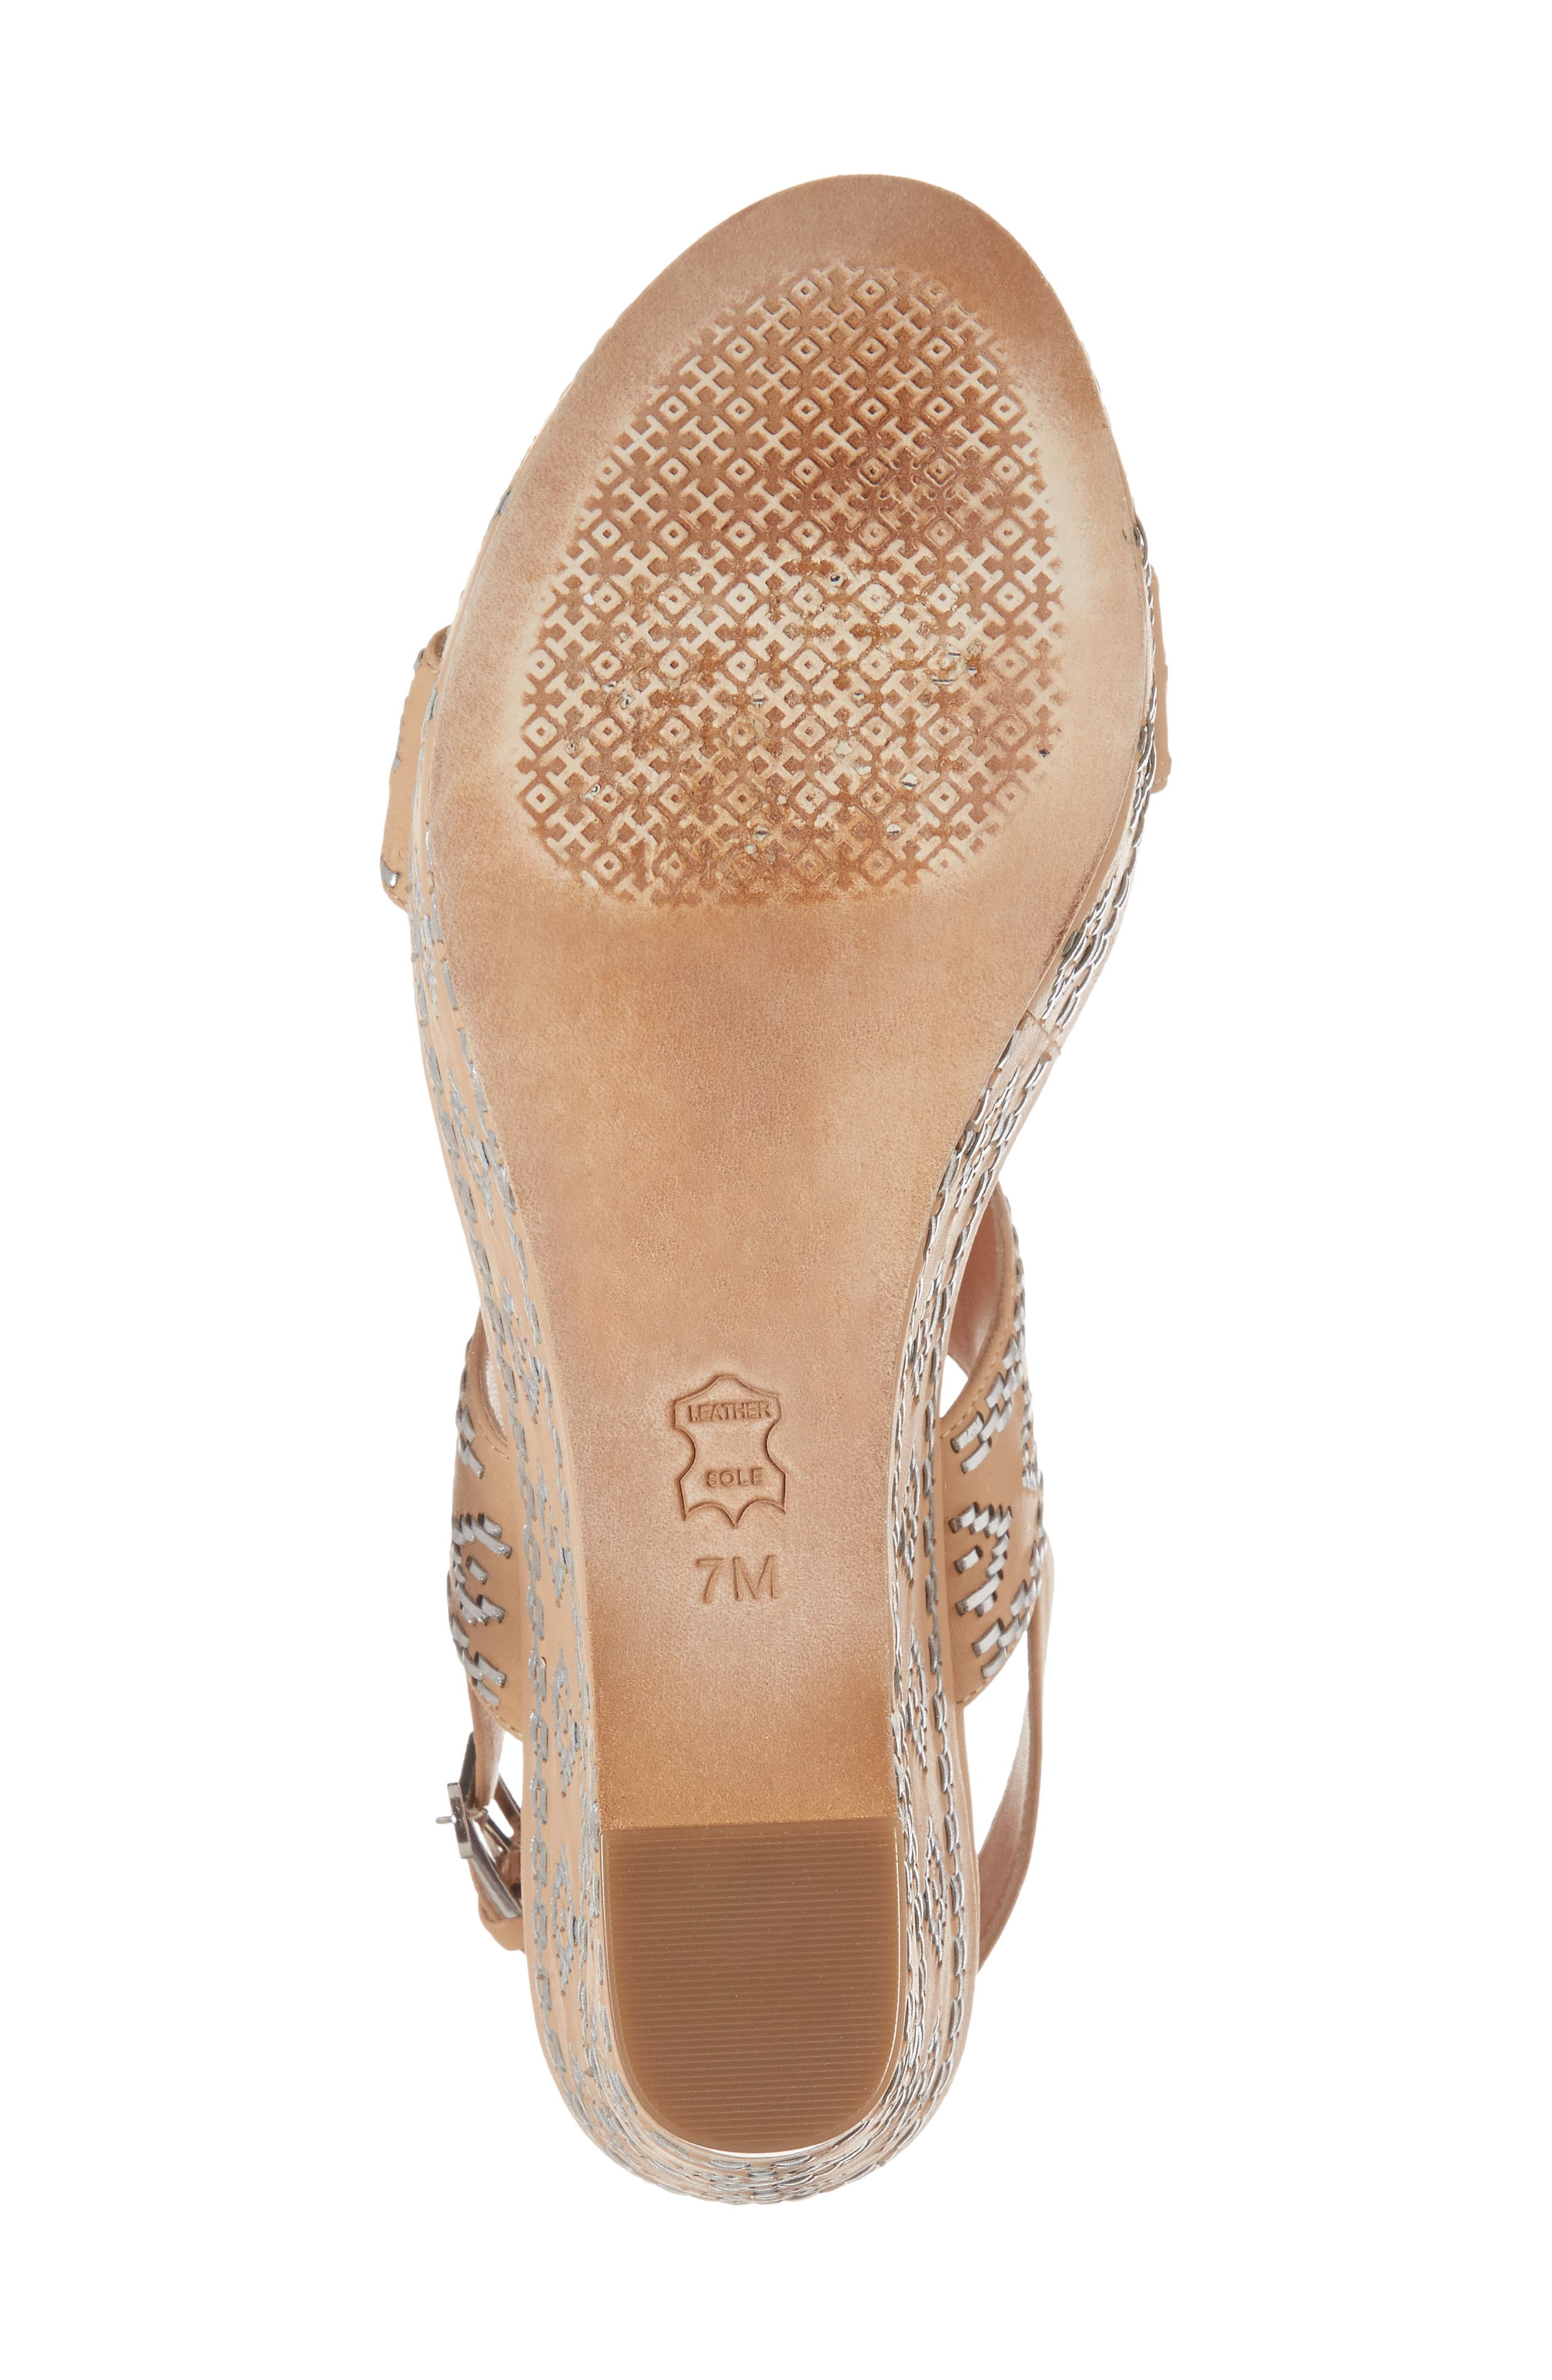 Blake Embroidered Platform Wedge,                             Alternate thumbnail 6, color,                             Natural Vachetta/ Silver